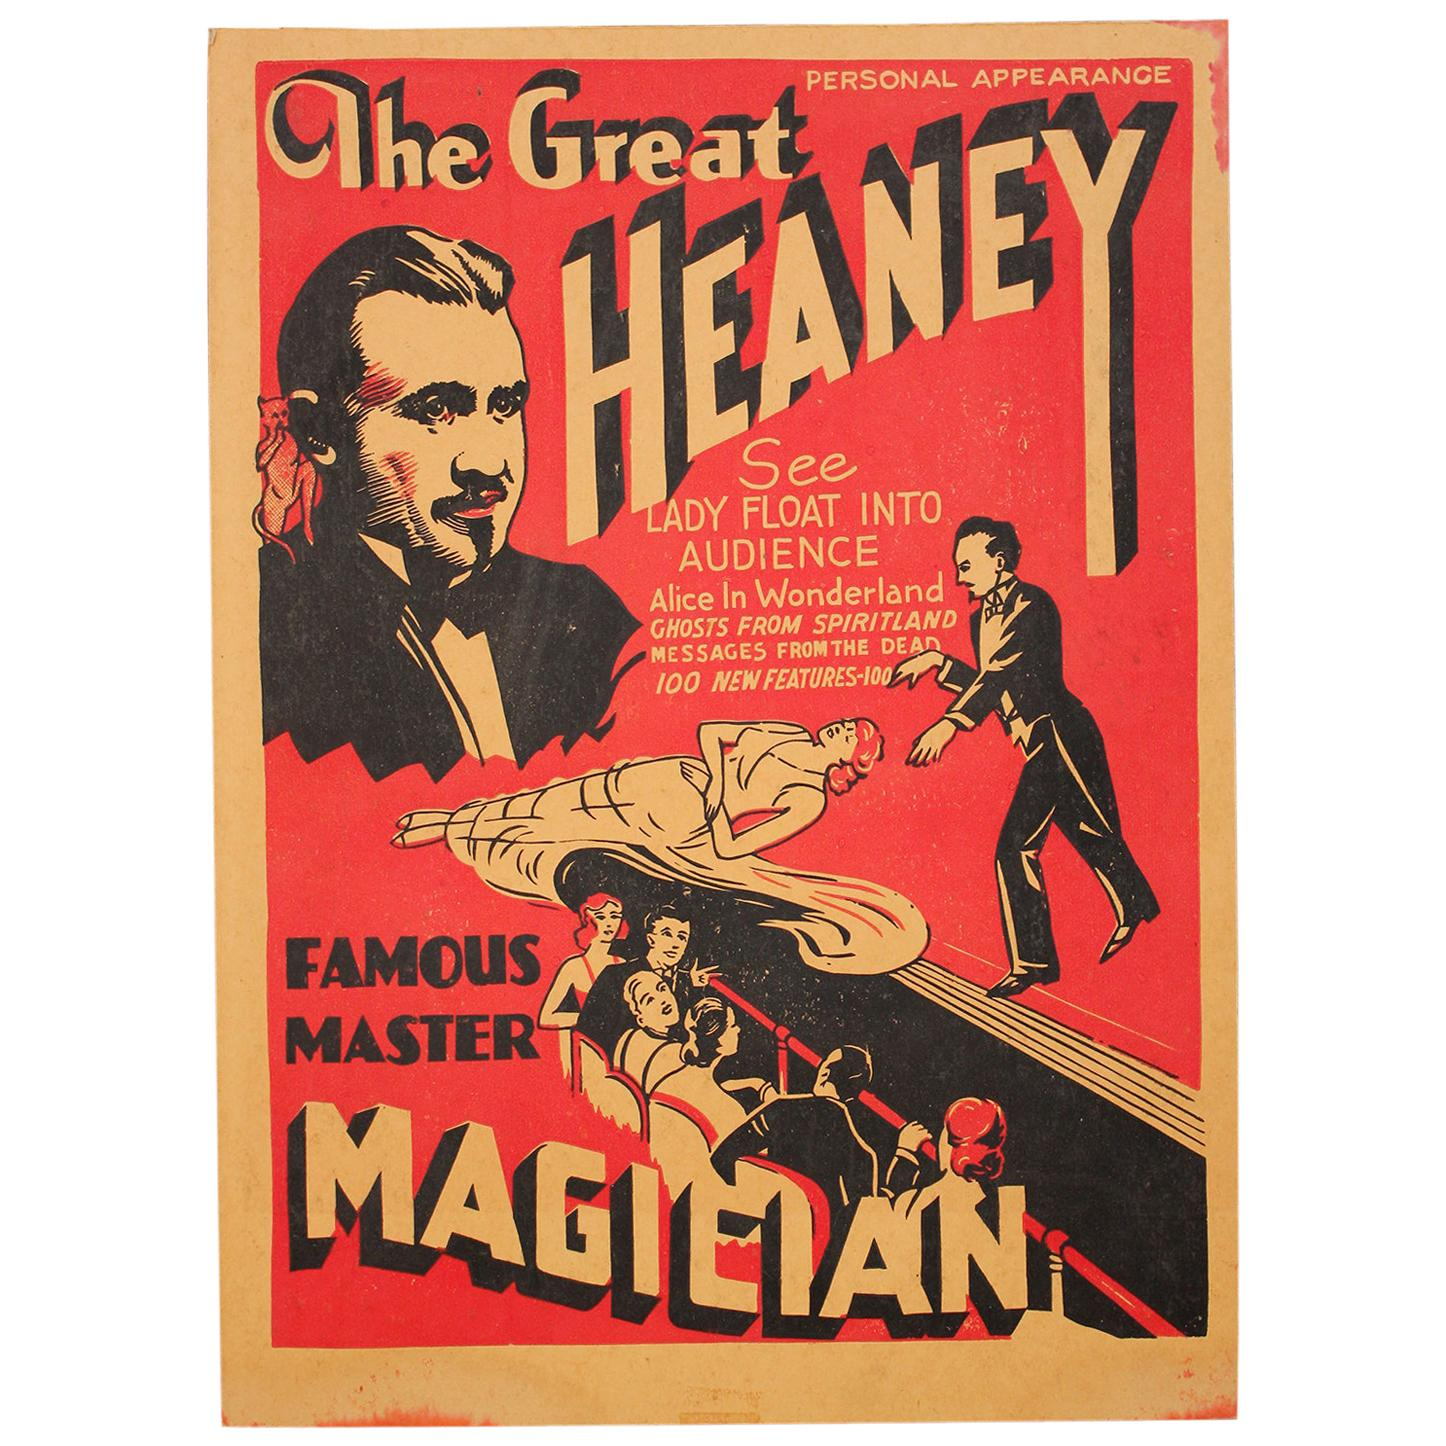 """1920s """"The Great Heaney"""" Magician Magic Oddity Advertising Poster Window Card"""